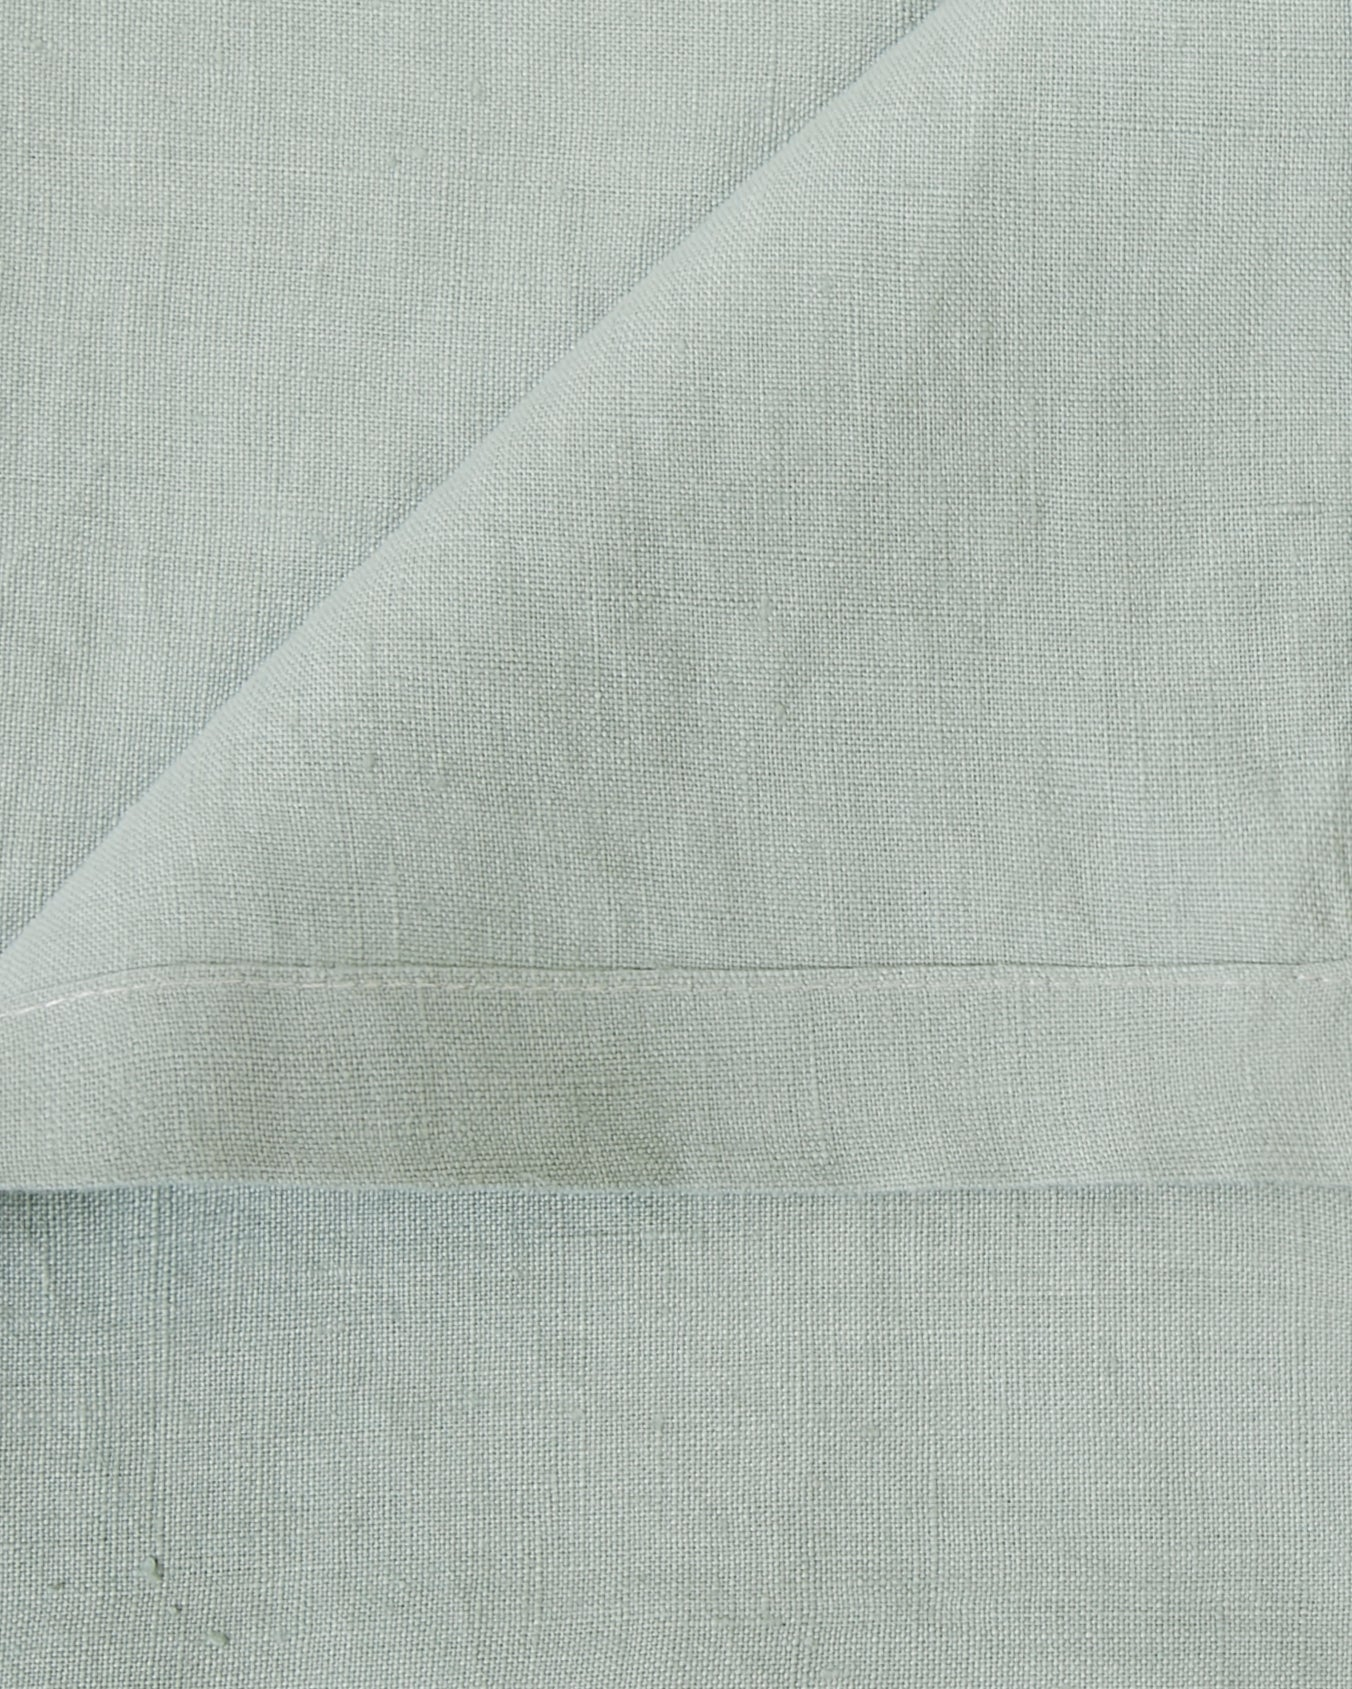 Berkeley Linen Table Napkins (Set of 4) - Milk side-shot